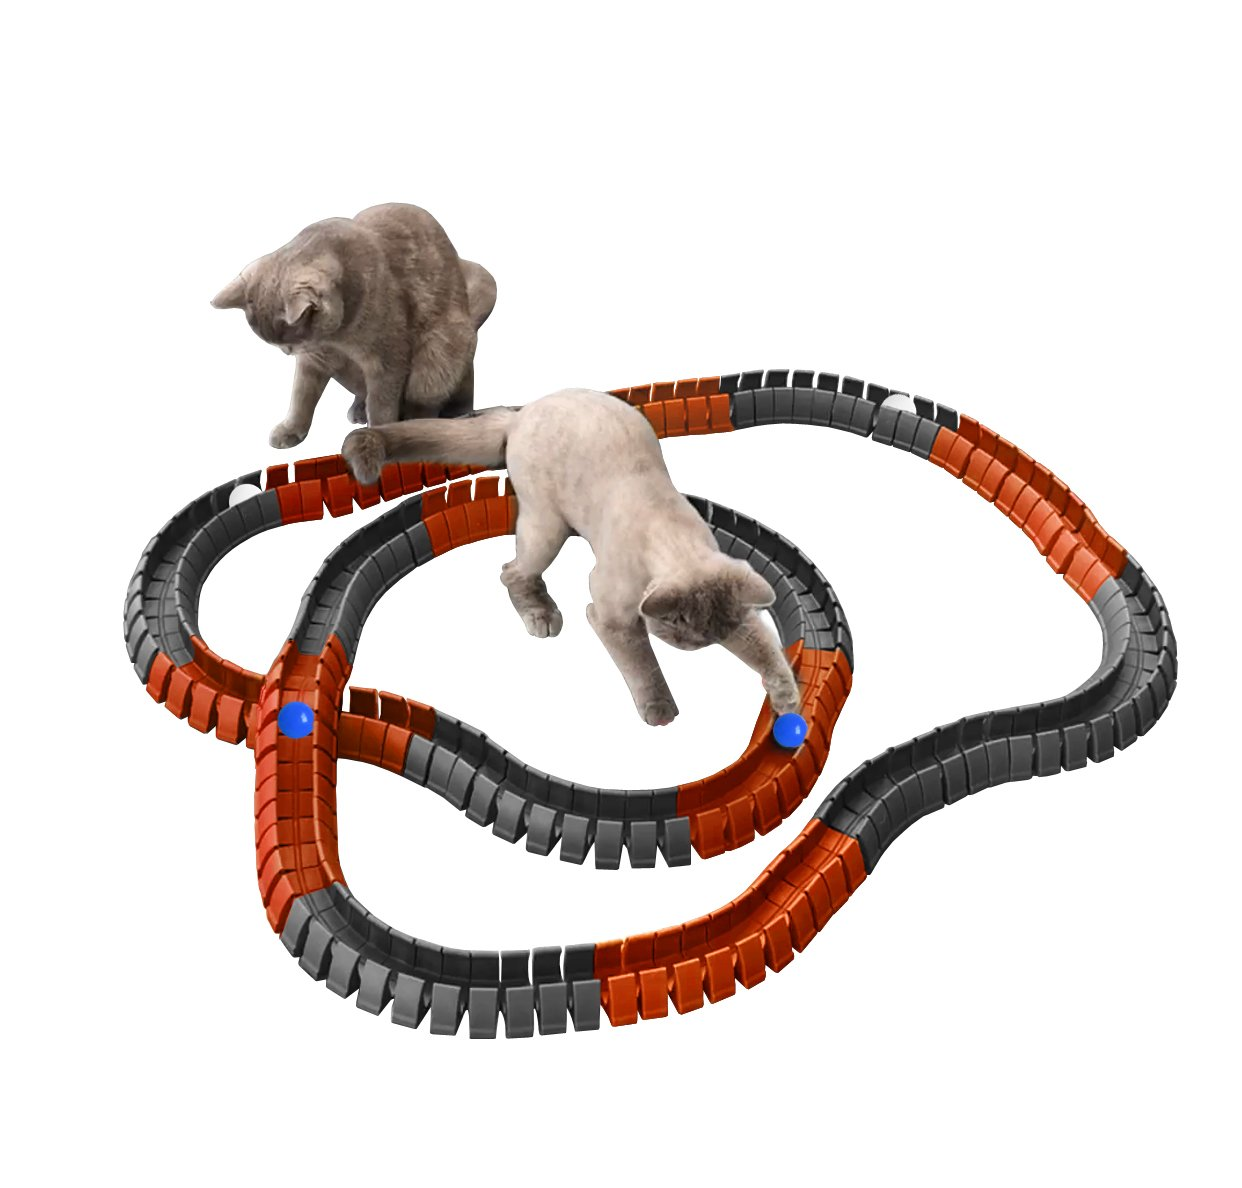 Magic Cat Track and Ball Toy Double Size for cats, kittens, pets, kitties, consisting of 16' flexible tracks and 4 balls, 8ft of orange tracks, 8ft of gray tracks with 2 white balls and 2 blue balls